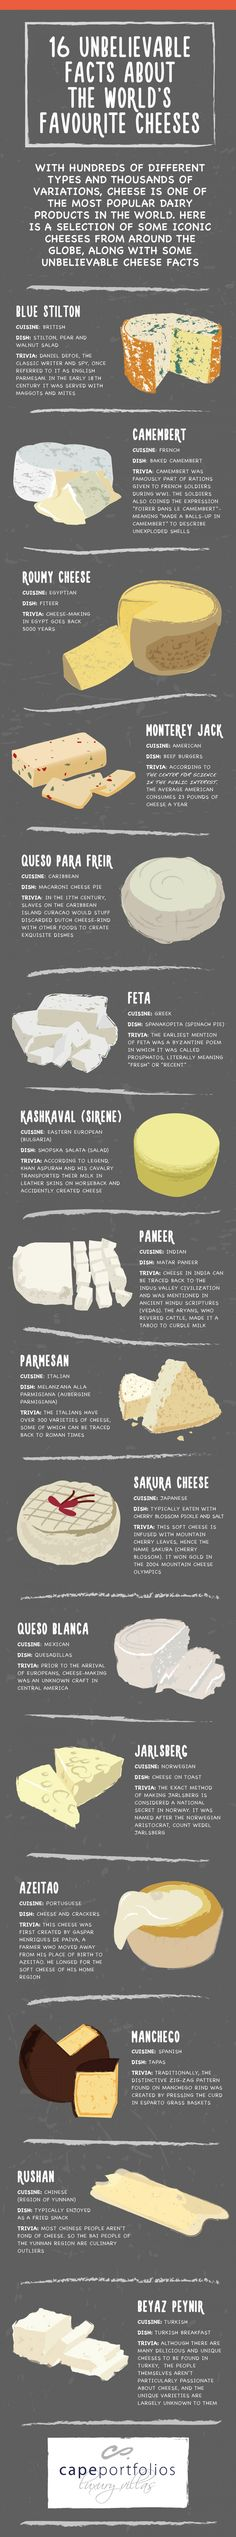 16 Unbelievable Facts About the World's Favorite Cheese #infographic #Cheese #Food